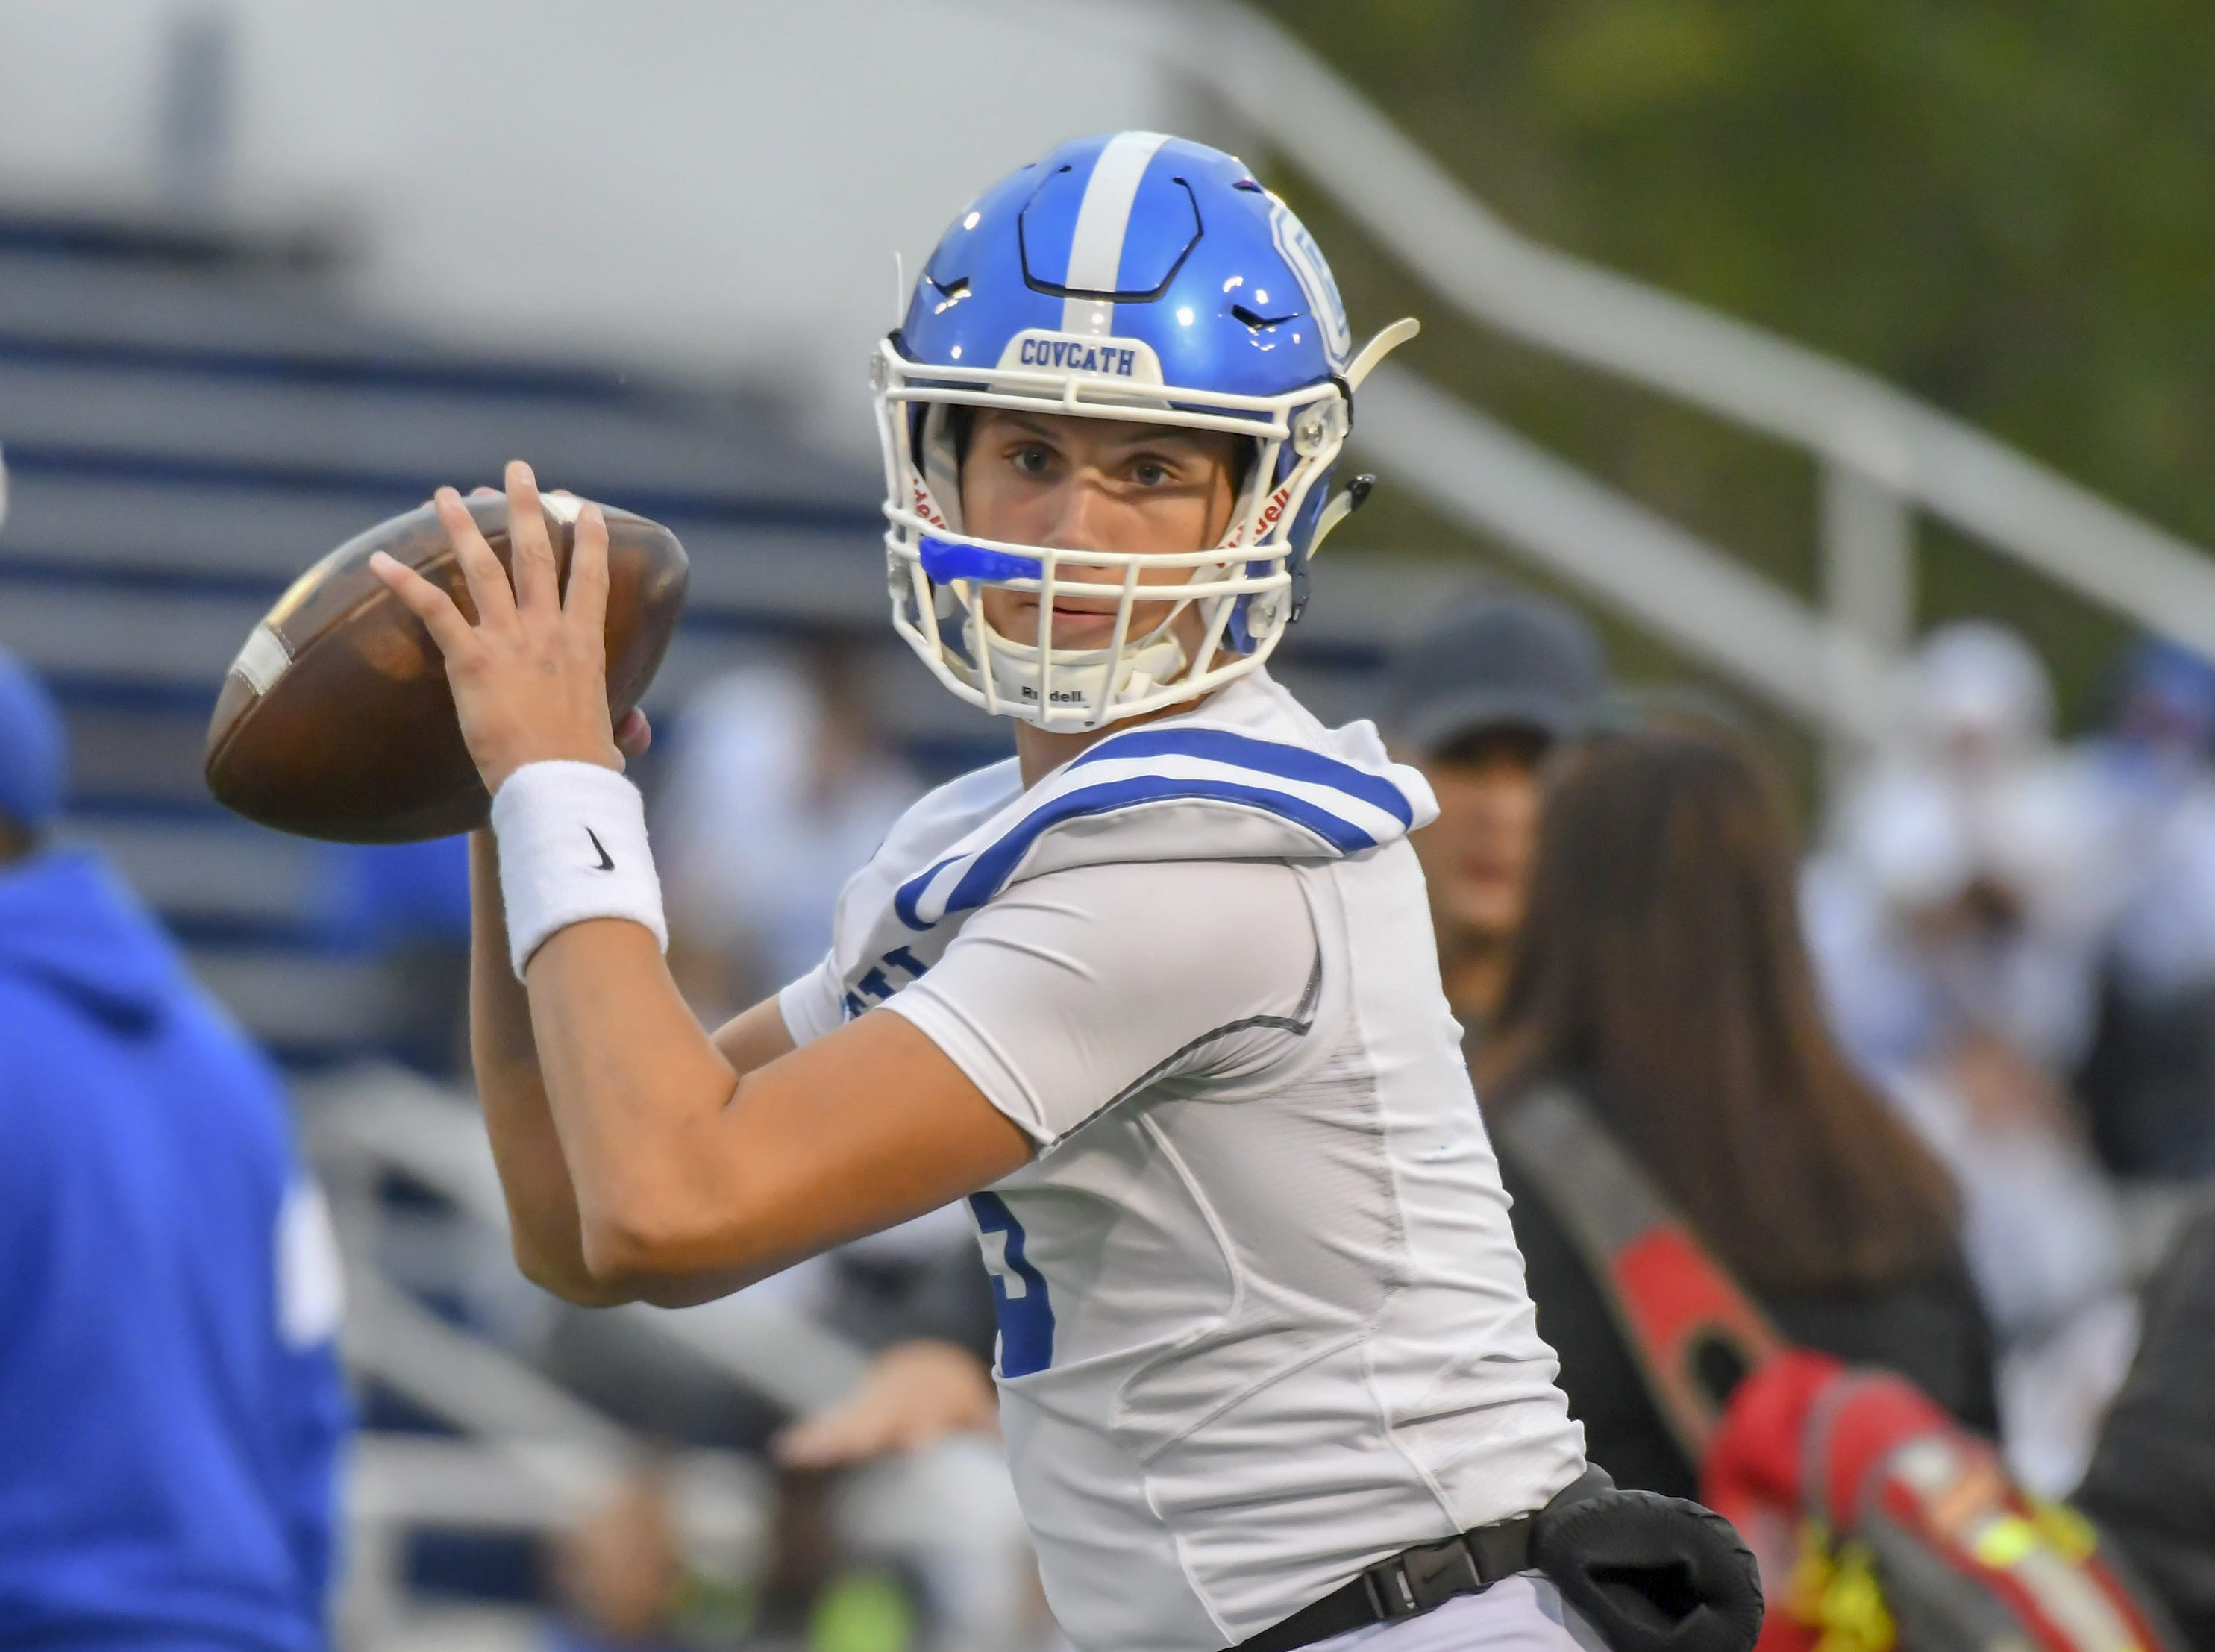 Covington Catholic quarterback Caleb Jacob warms up before their game against the Bluebirds, Highlands High School, Friday, October 12, 2018